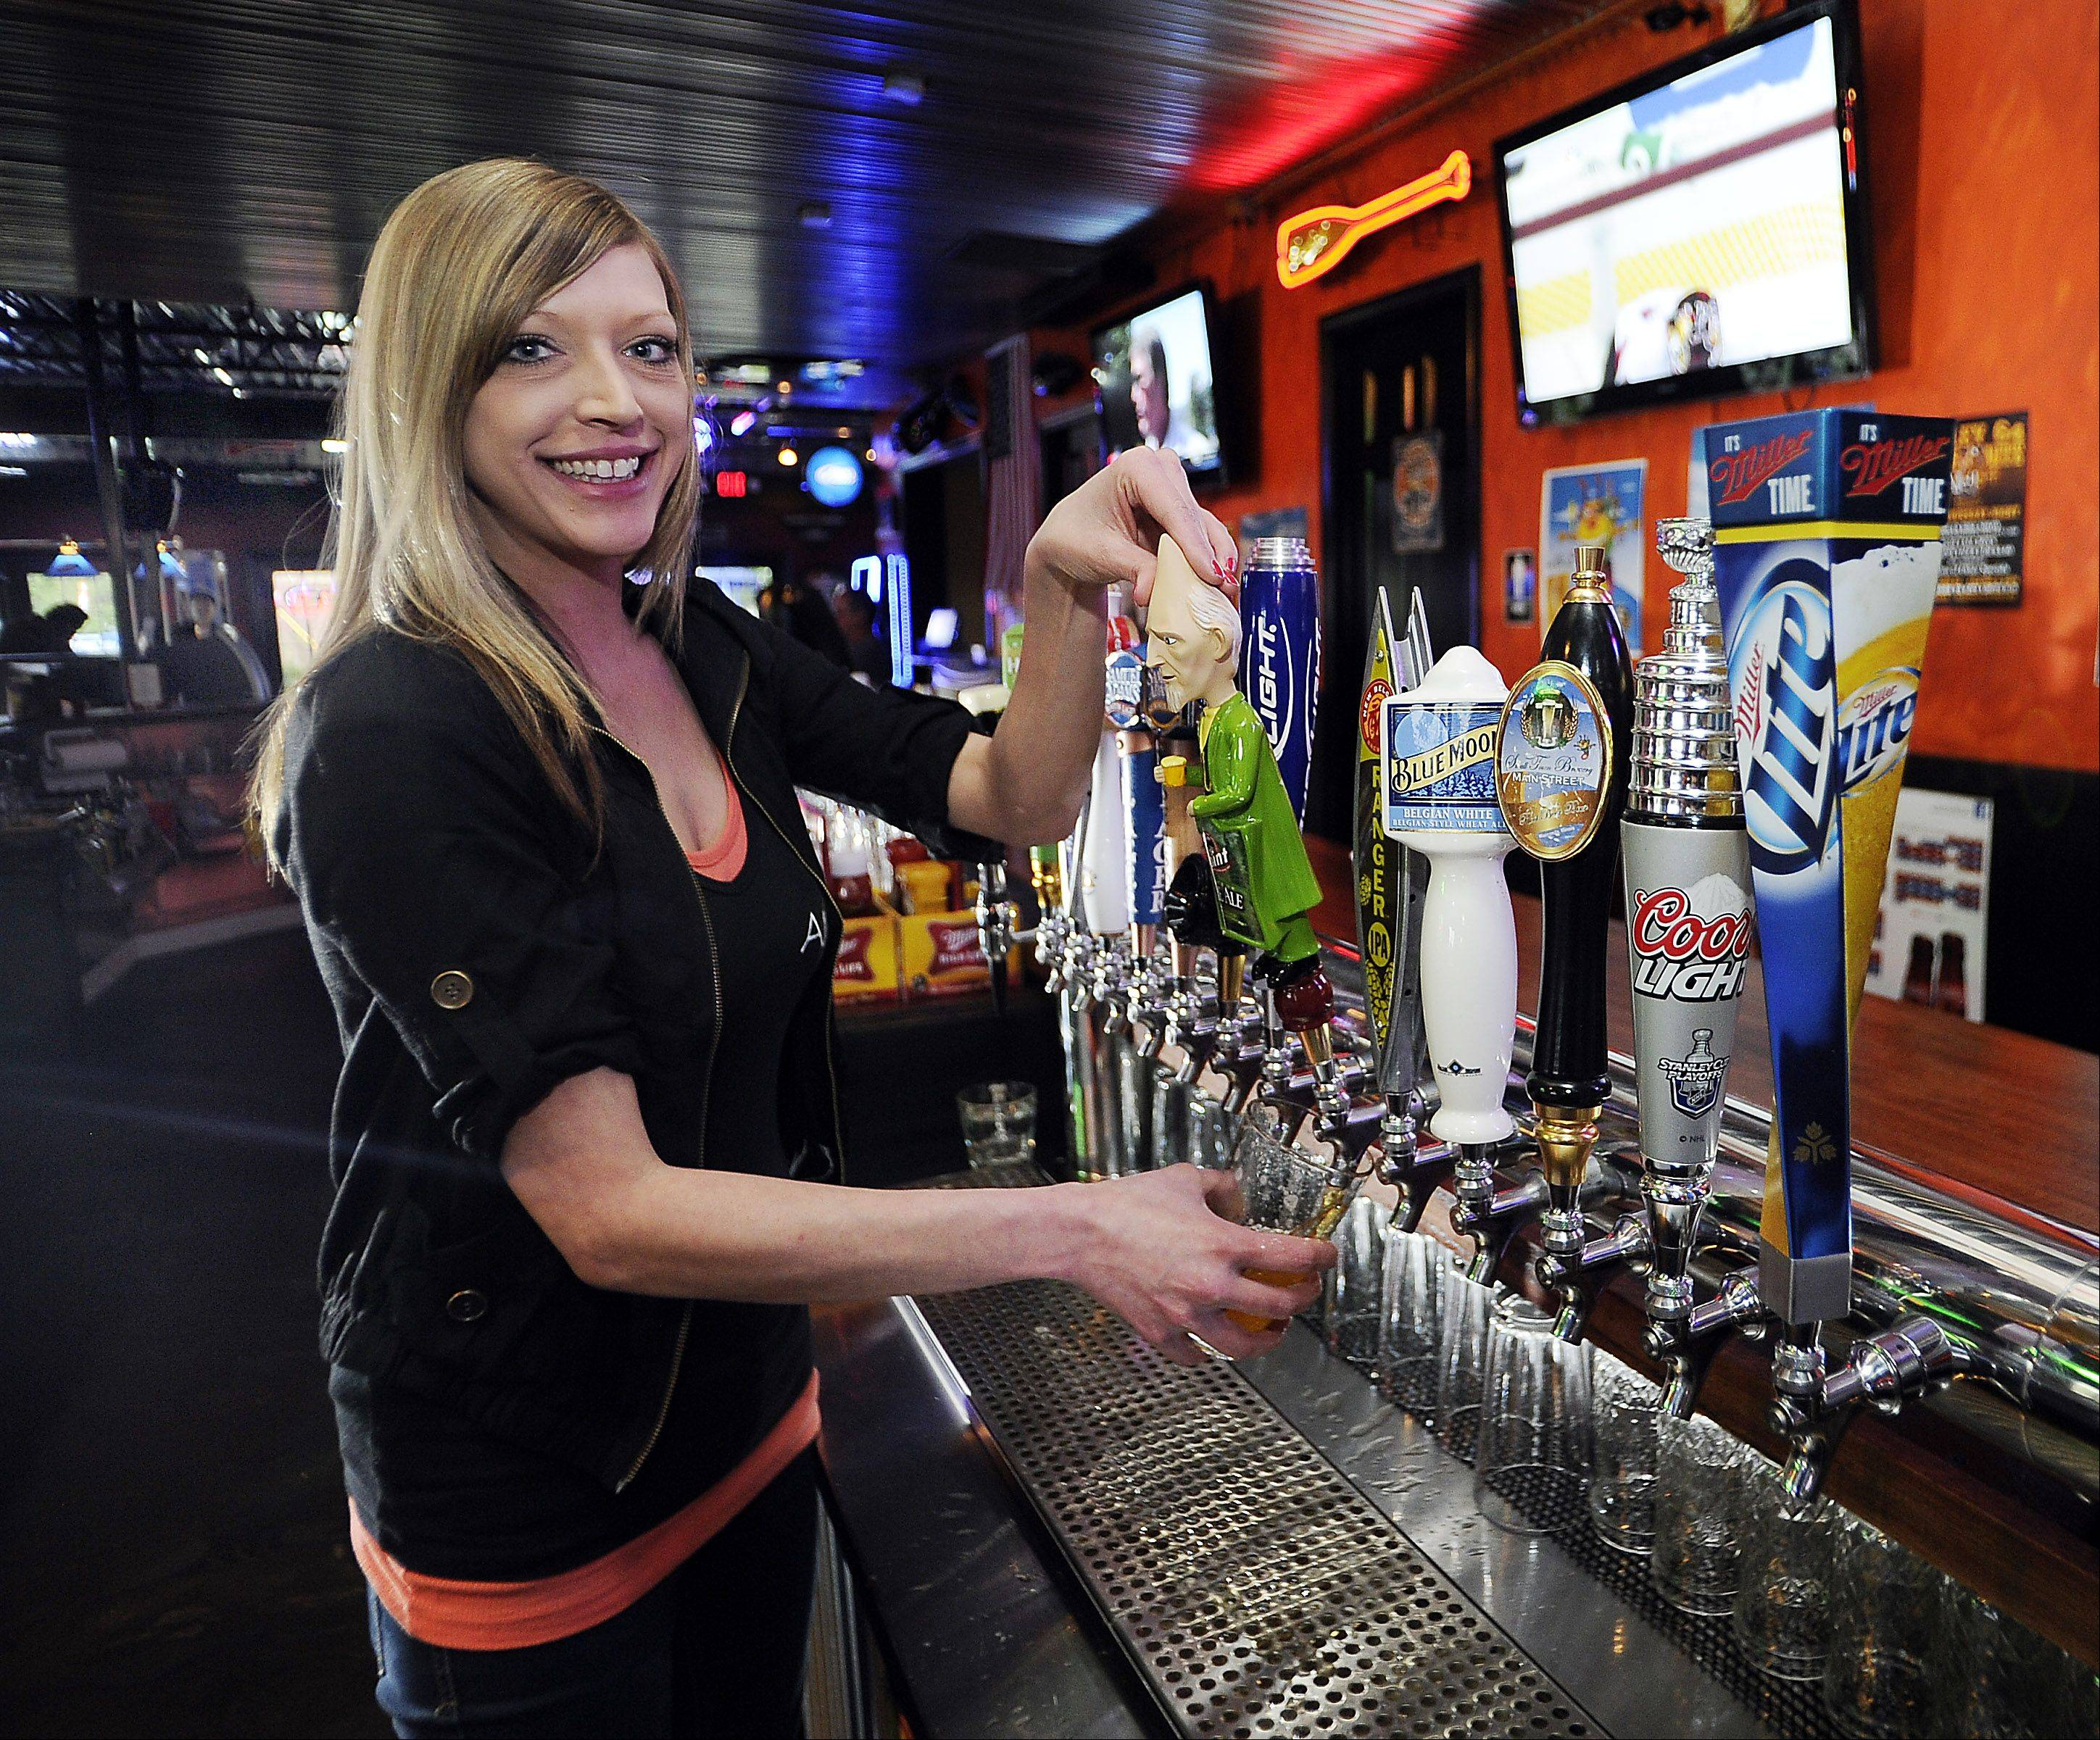 Denise Mamrot pours a beer at Alley 64 in Palatine.